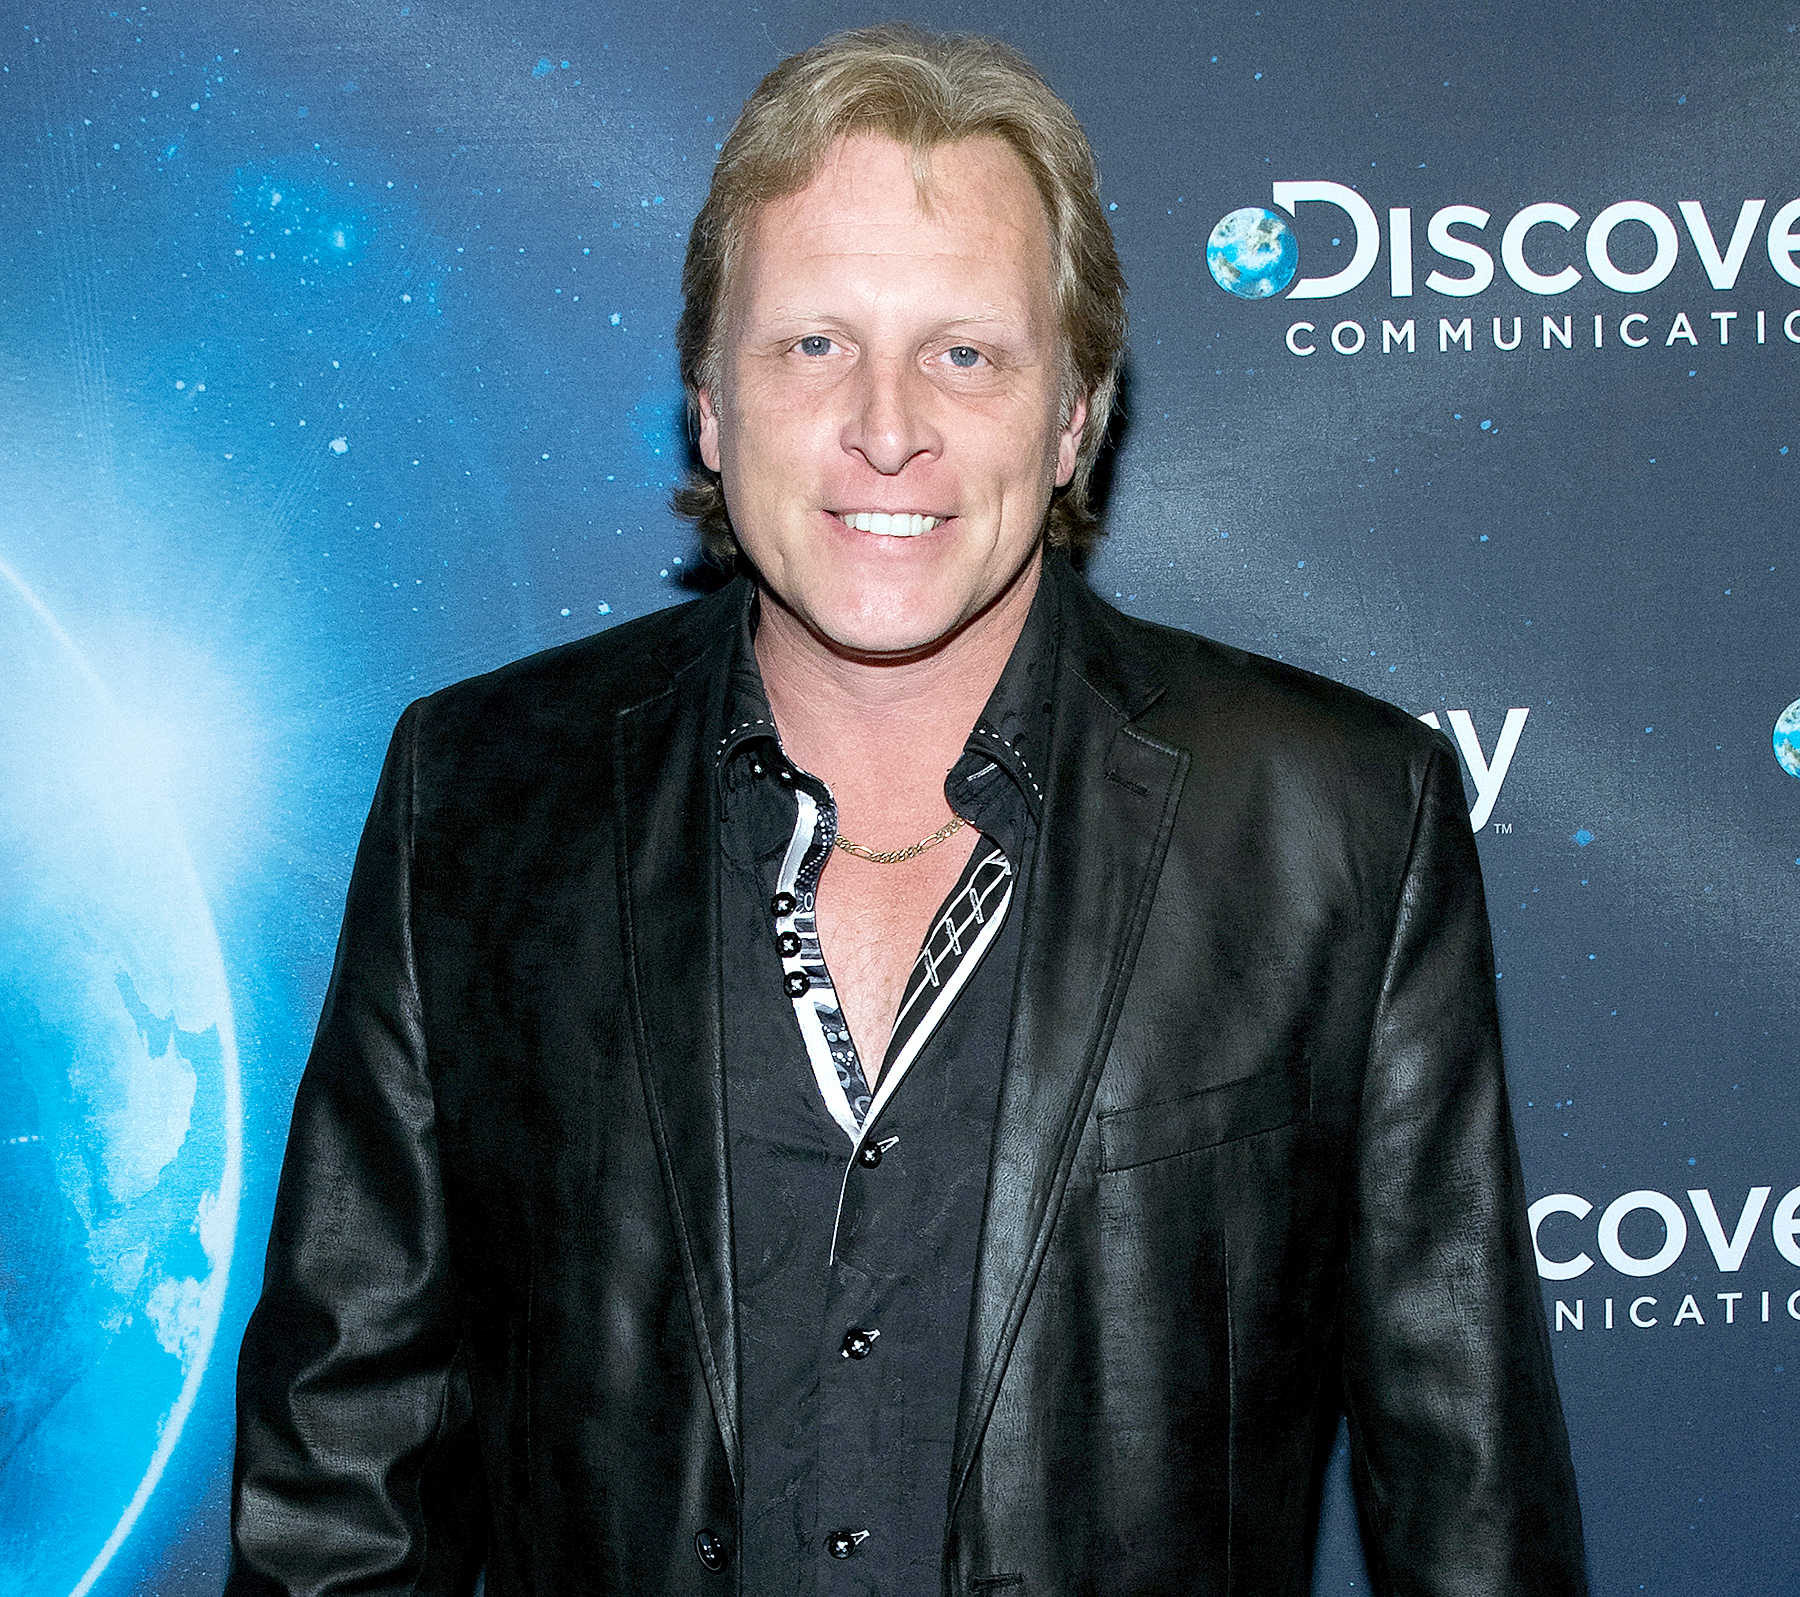 Sig Hansen attends Discovery's 30th Anniversary Celebration at The Paley Center for Media on June 24, 2015 in New York City.